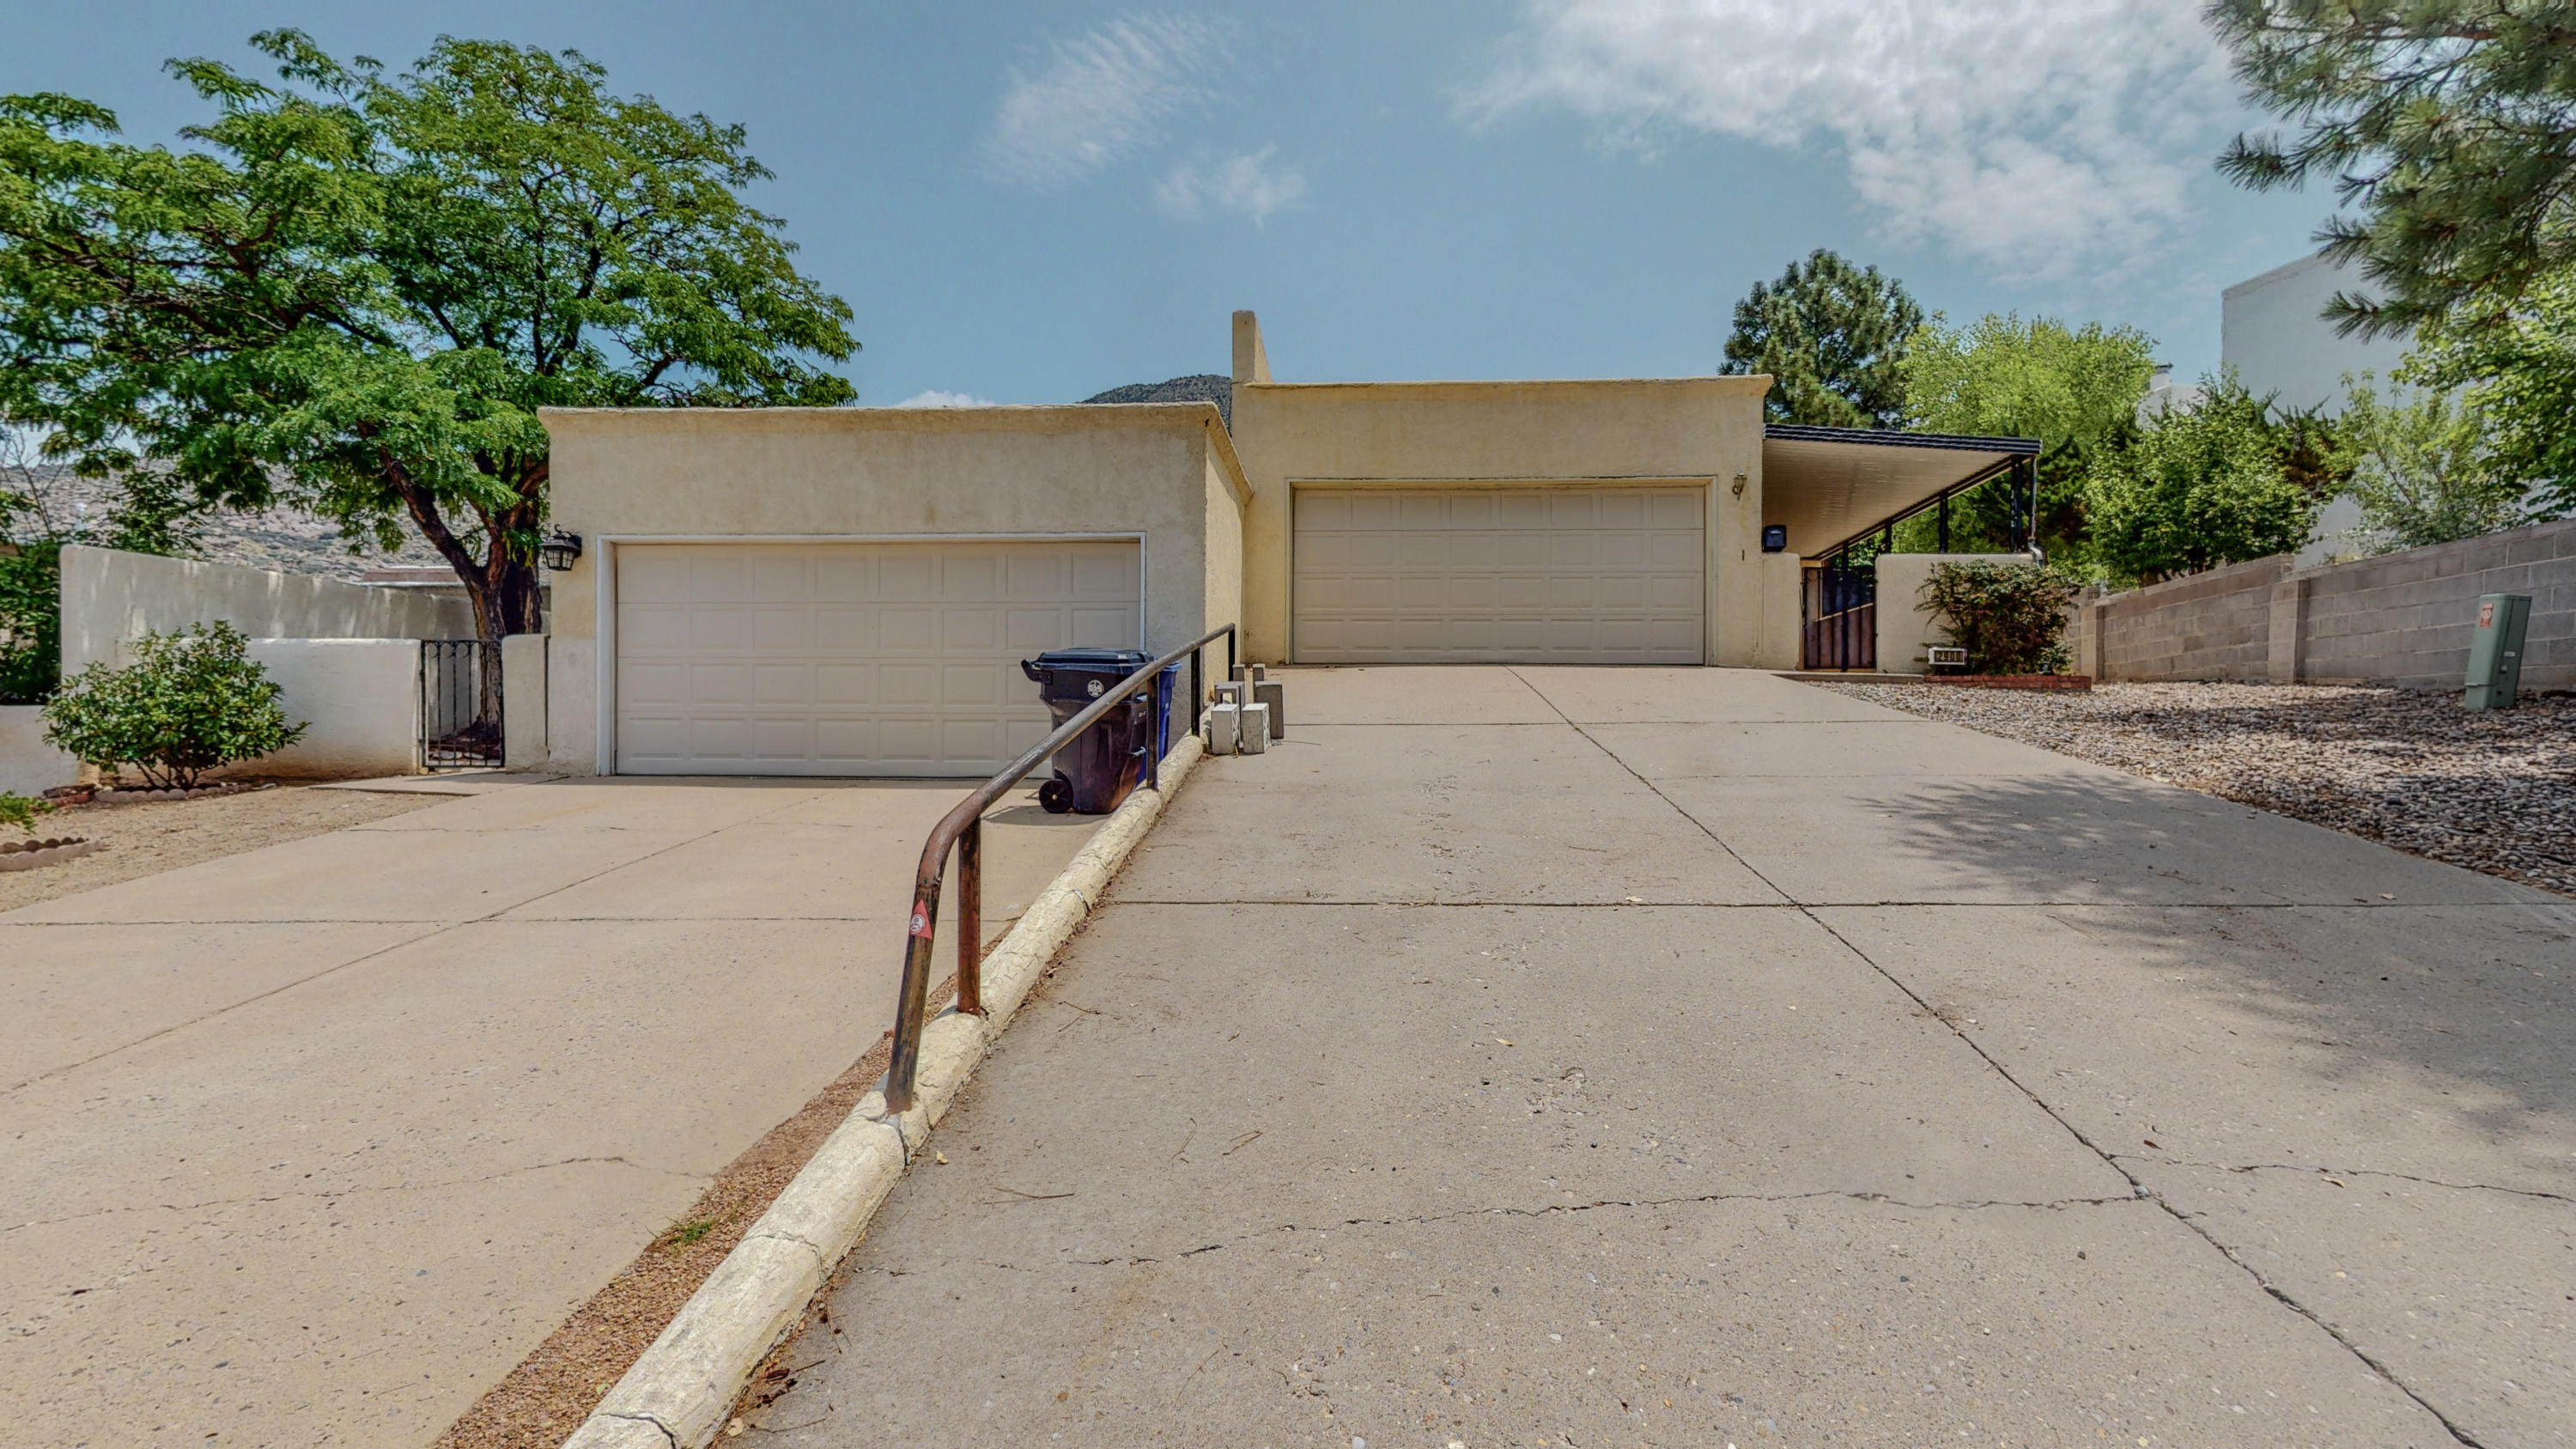 Great opportunity east of Tramway!  End unit  on cul de sac with NO HOA. Covered front patio, backyard access to fully fenced yard with up close mountain views.   Just steps from Sandia hiking trails.